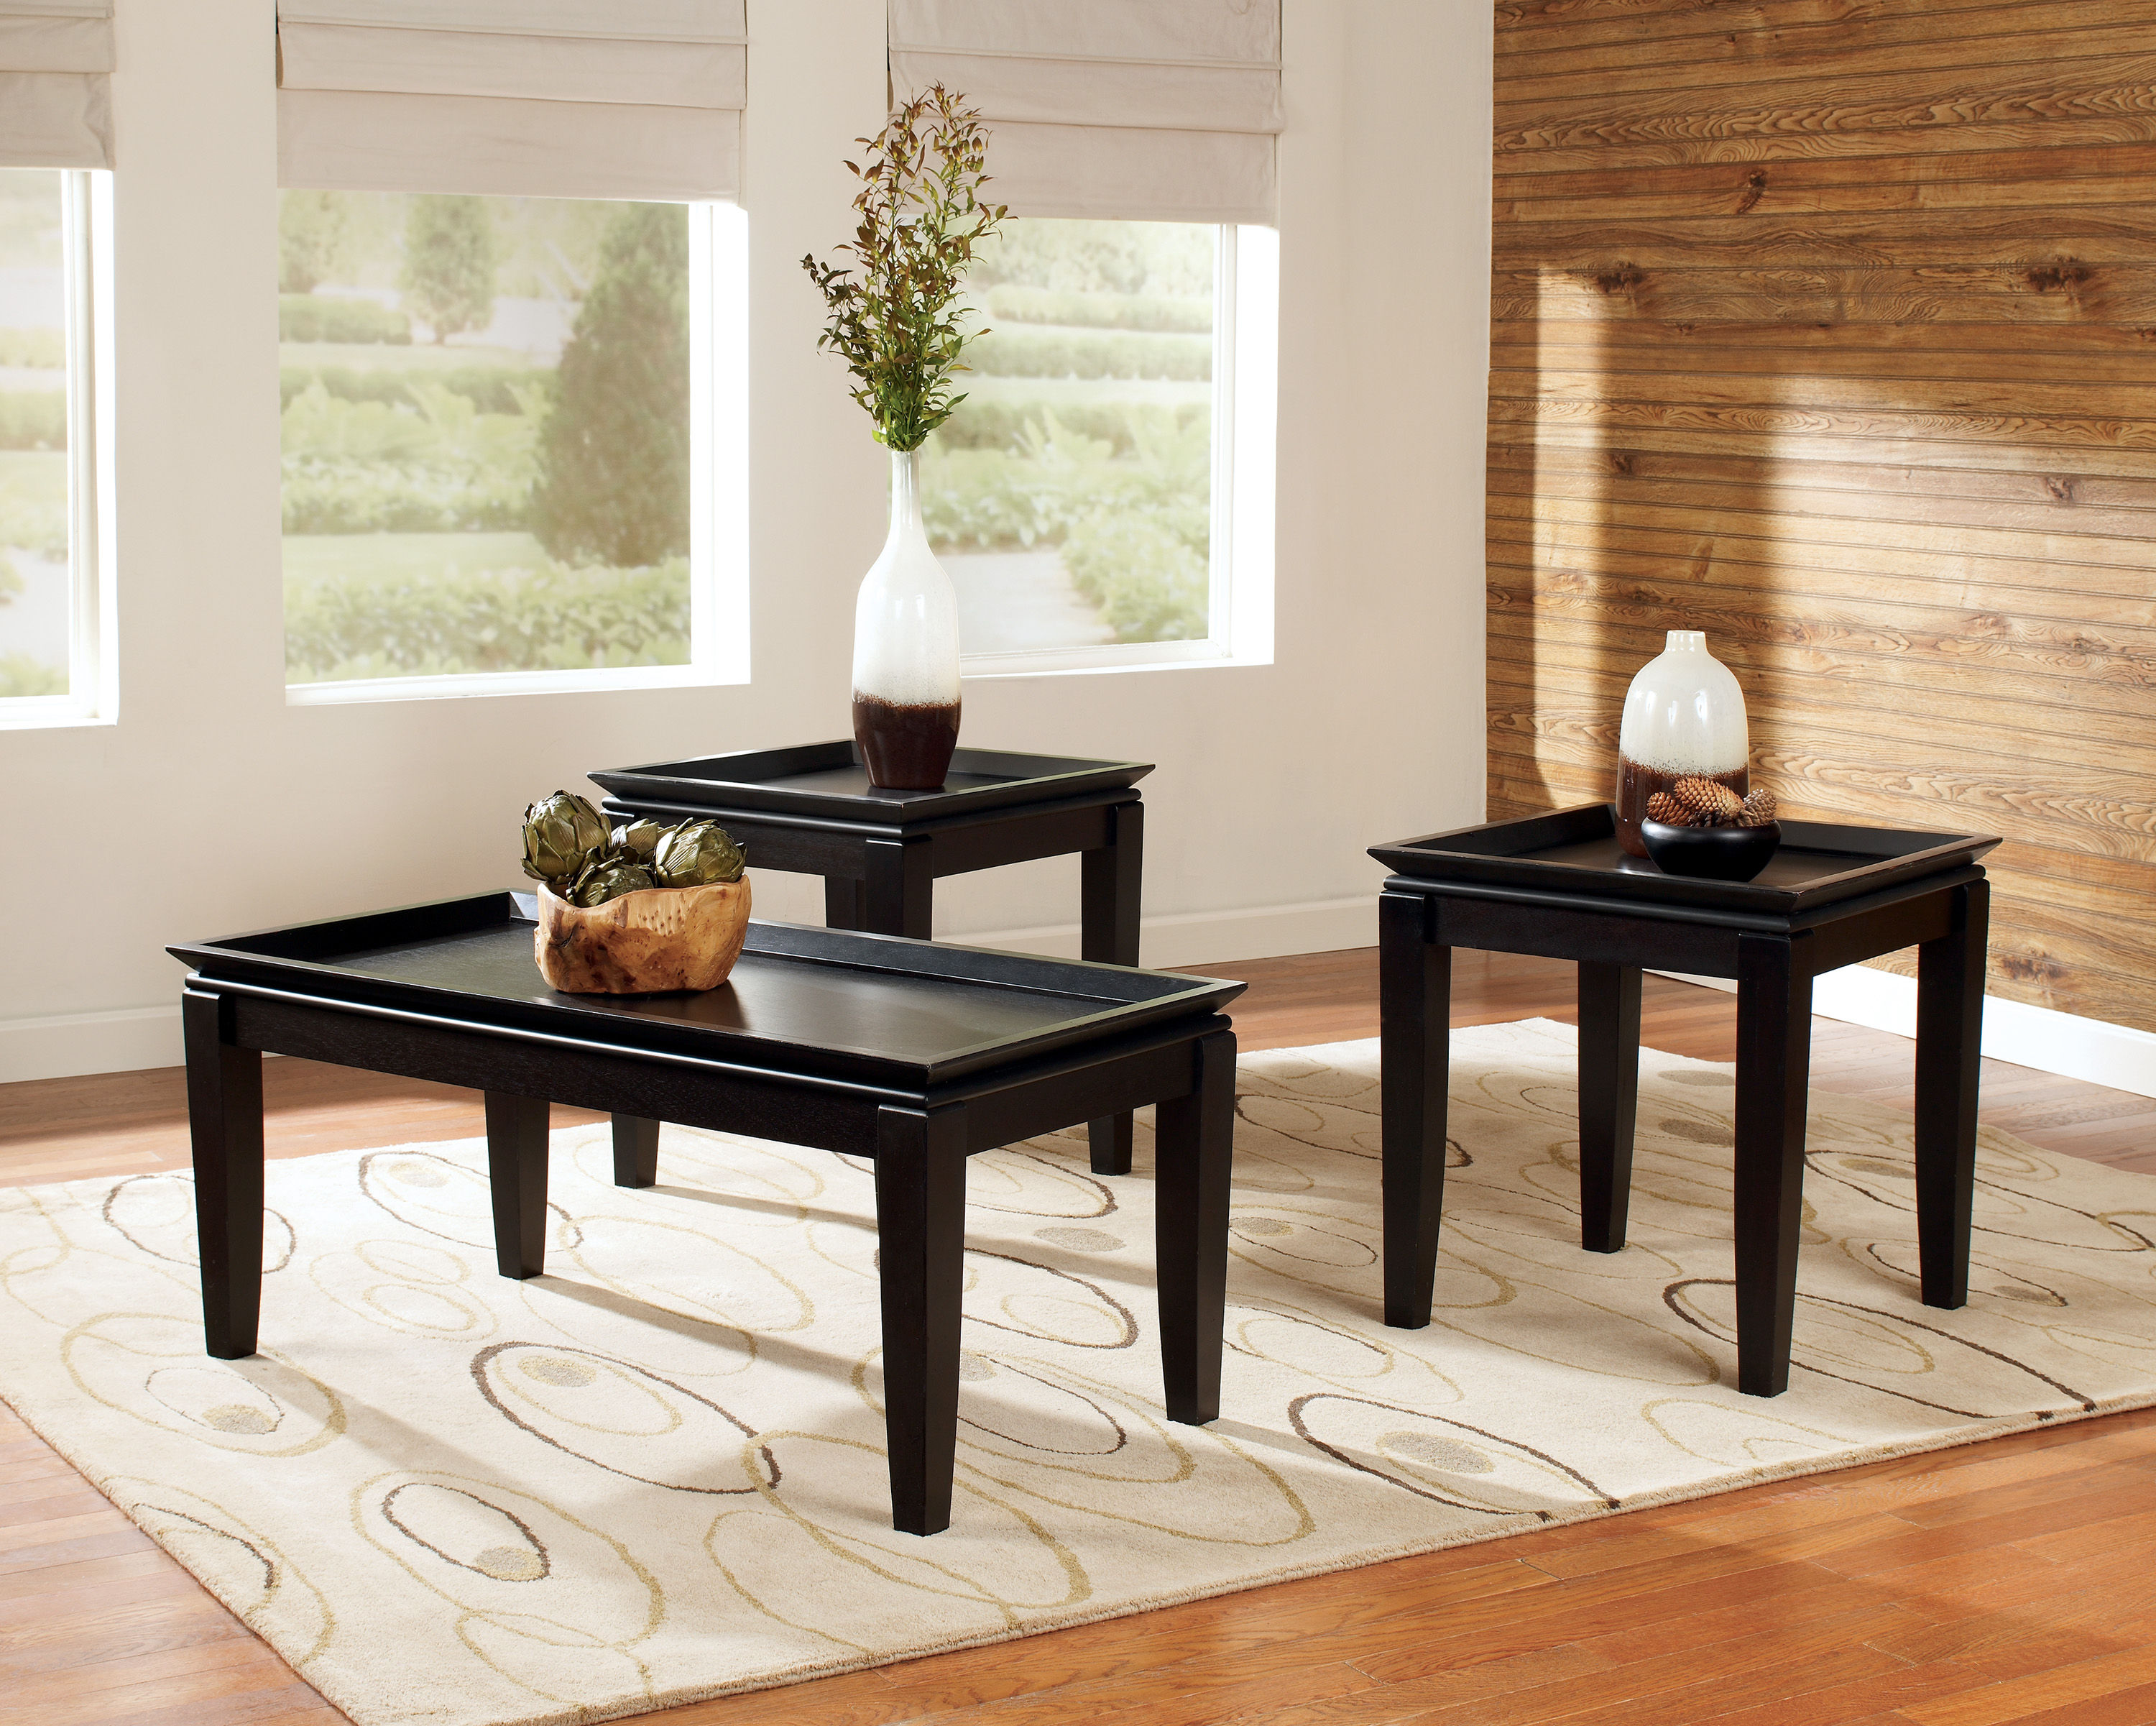 Ashley Furniture Delormy Black 3pc Coffee Table Set The